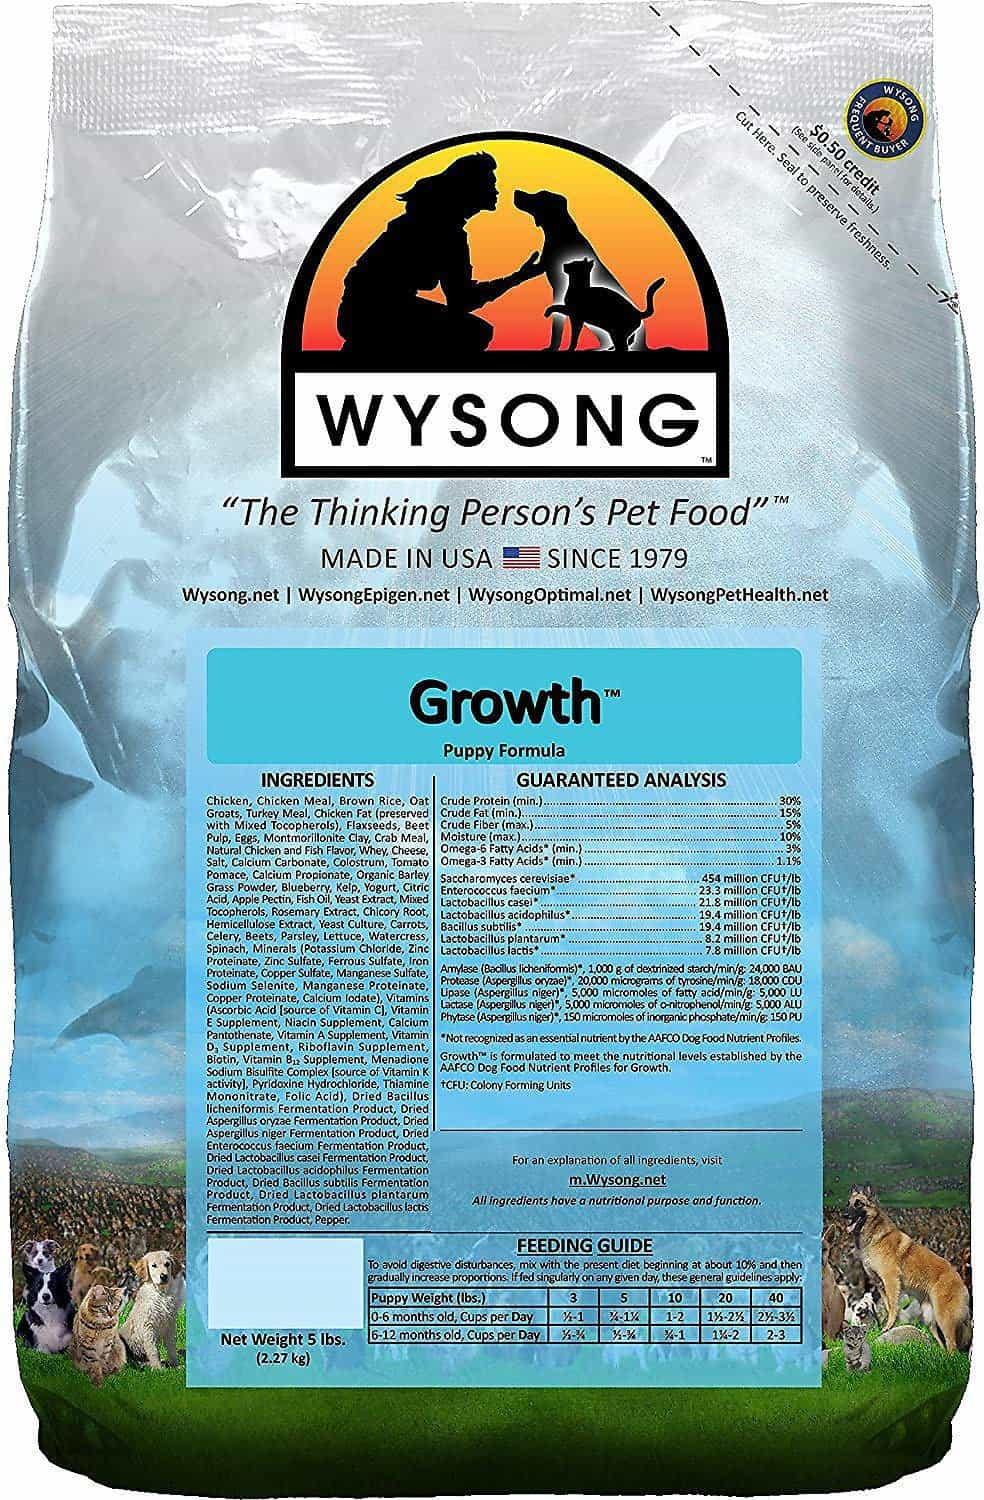 Wysong Dog Food Review [year]: Pioneers on Archetypal Feeding 8